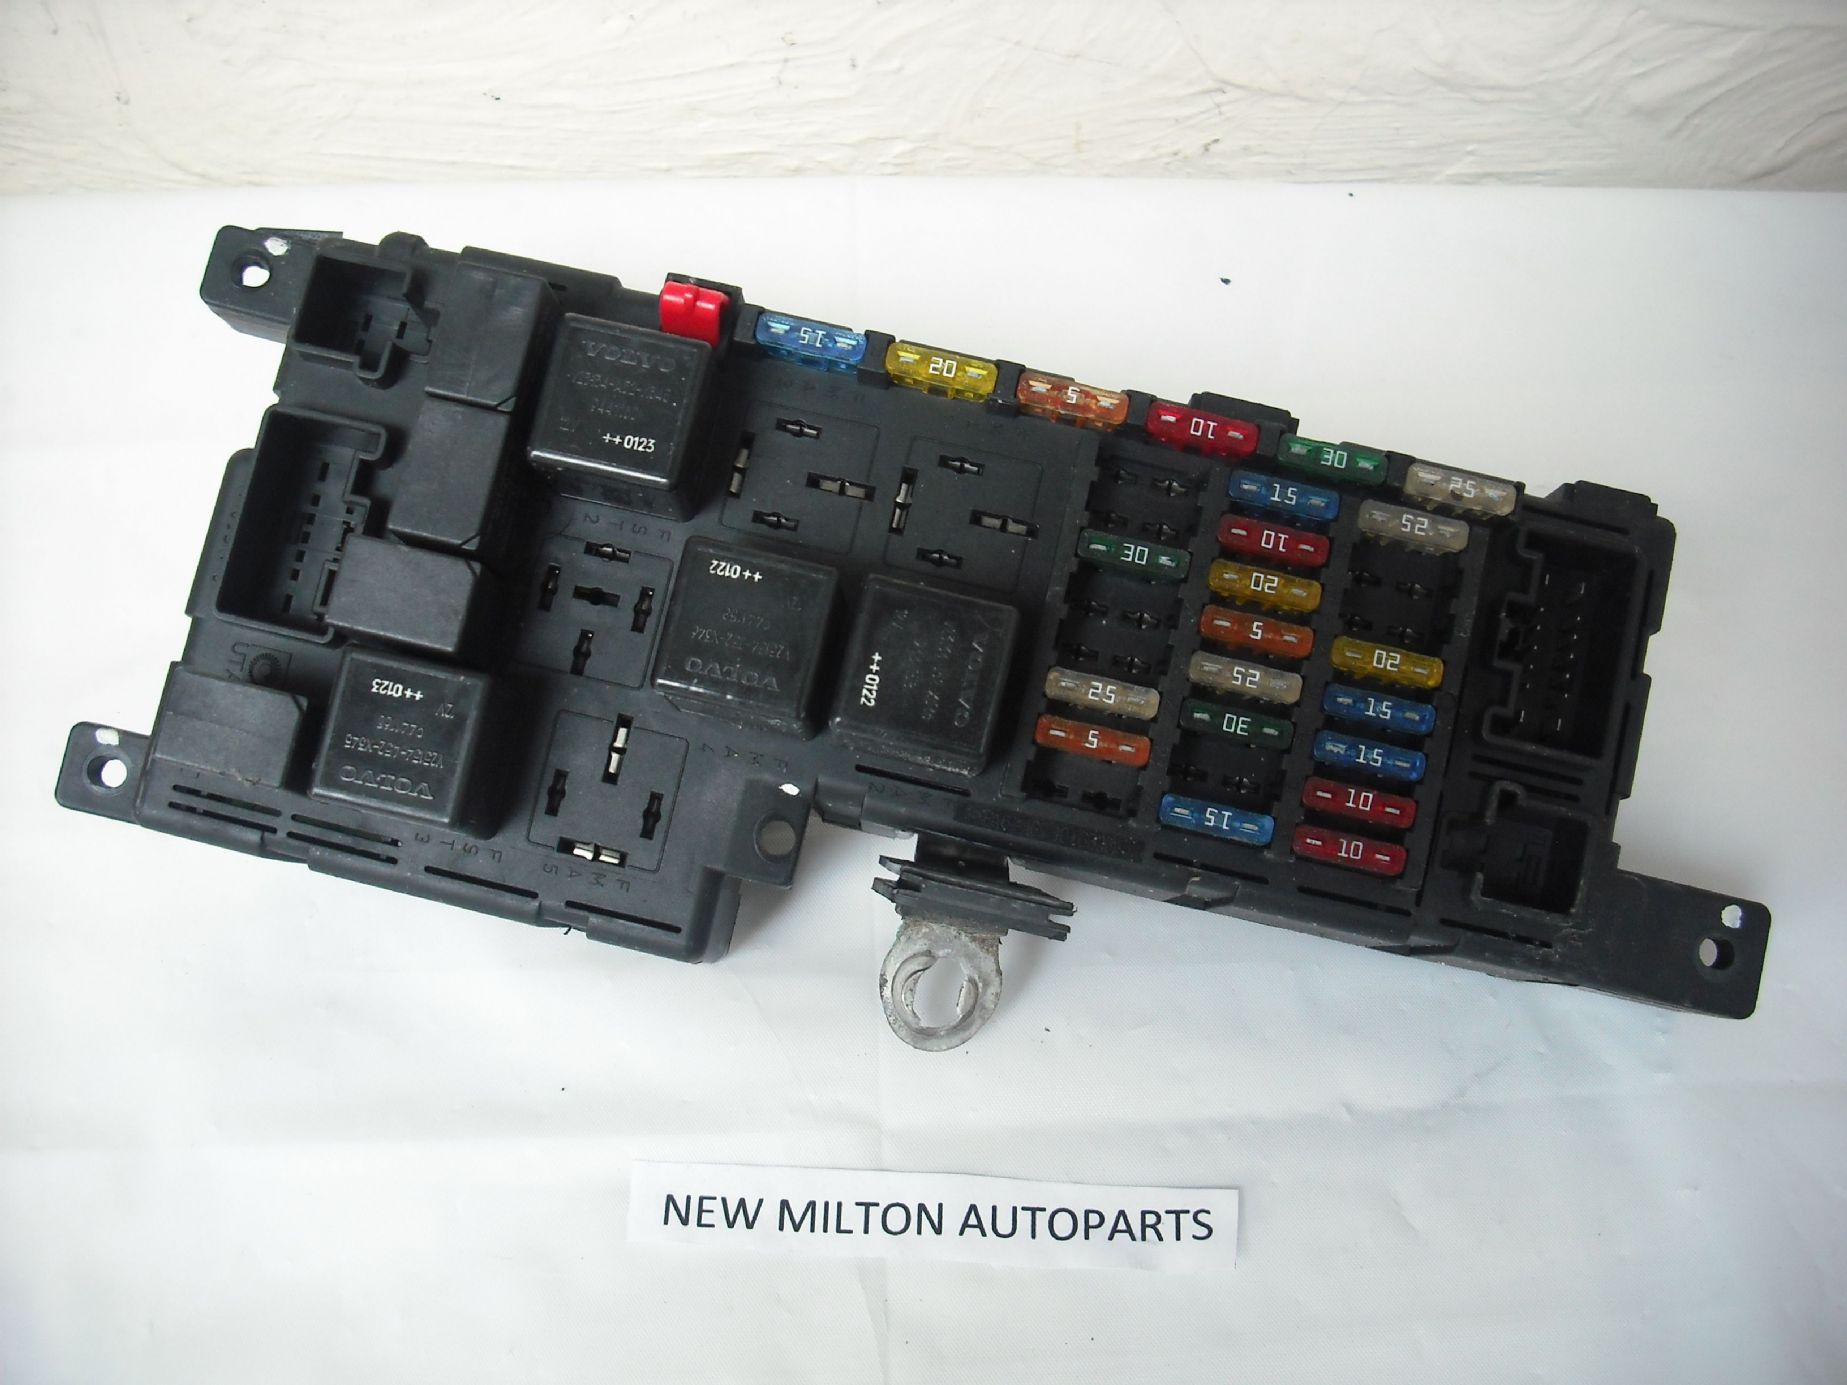 volvo xc90 cem wiring diagram msd ignition digital 6a anleitung xc 70 2007 fuse box in engine compartment : 47 images - diagrams ...